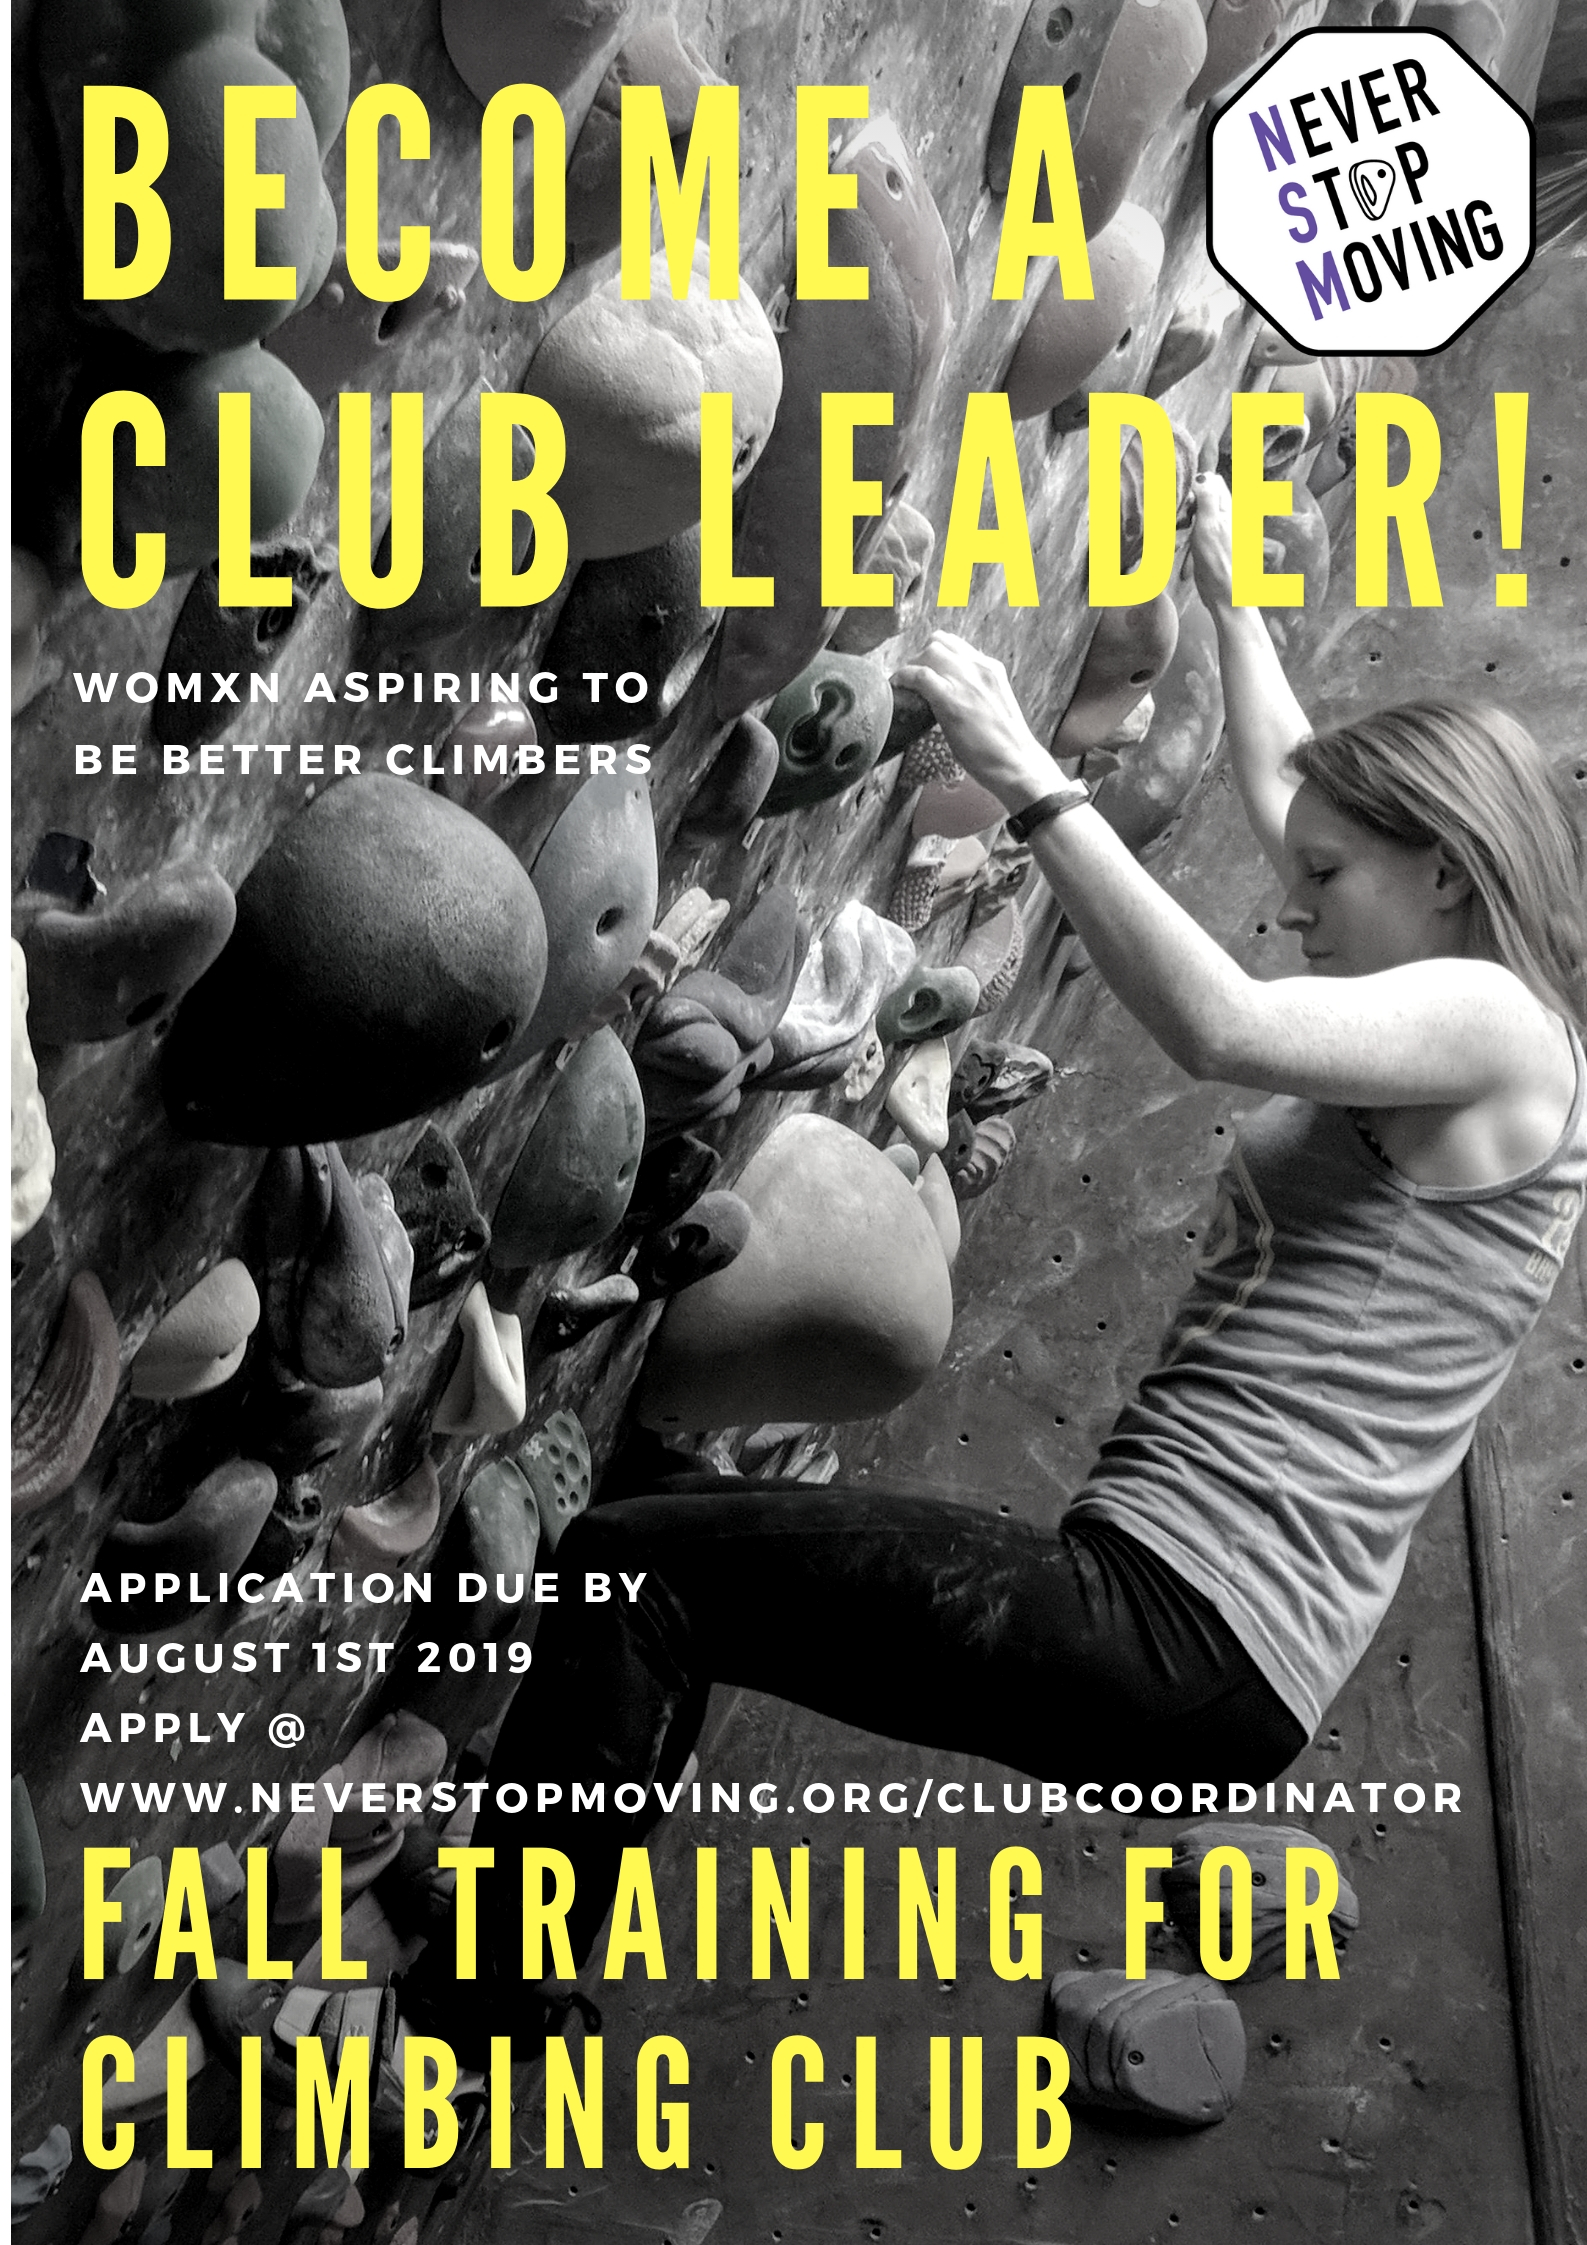 Never Stop Moving - Club Coordinator Volunteer Position Poster